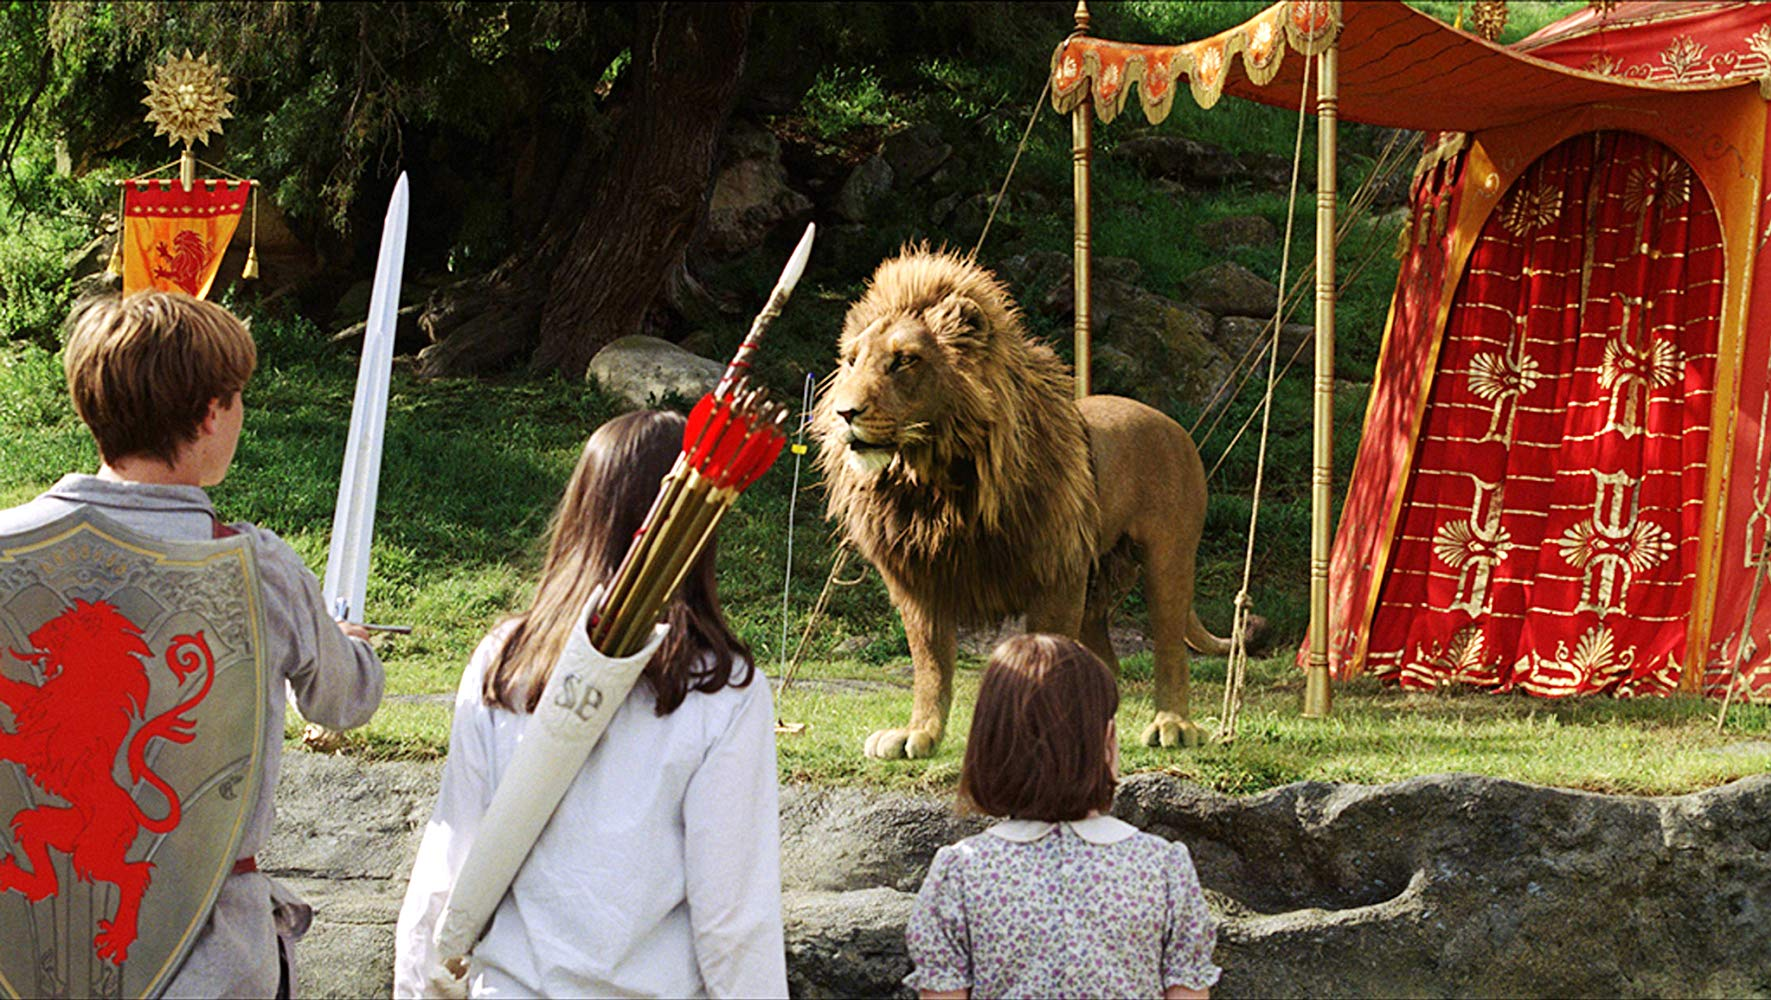 Aslan appears before the children in The Chronicles of Narnia: The Lion, The Witch and the Wardrobe (2005)